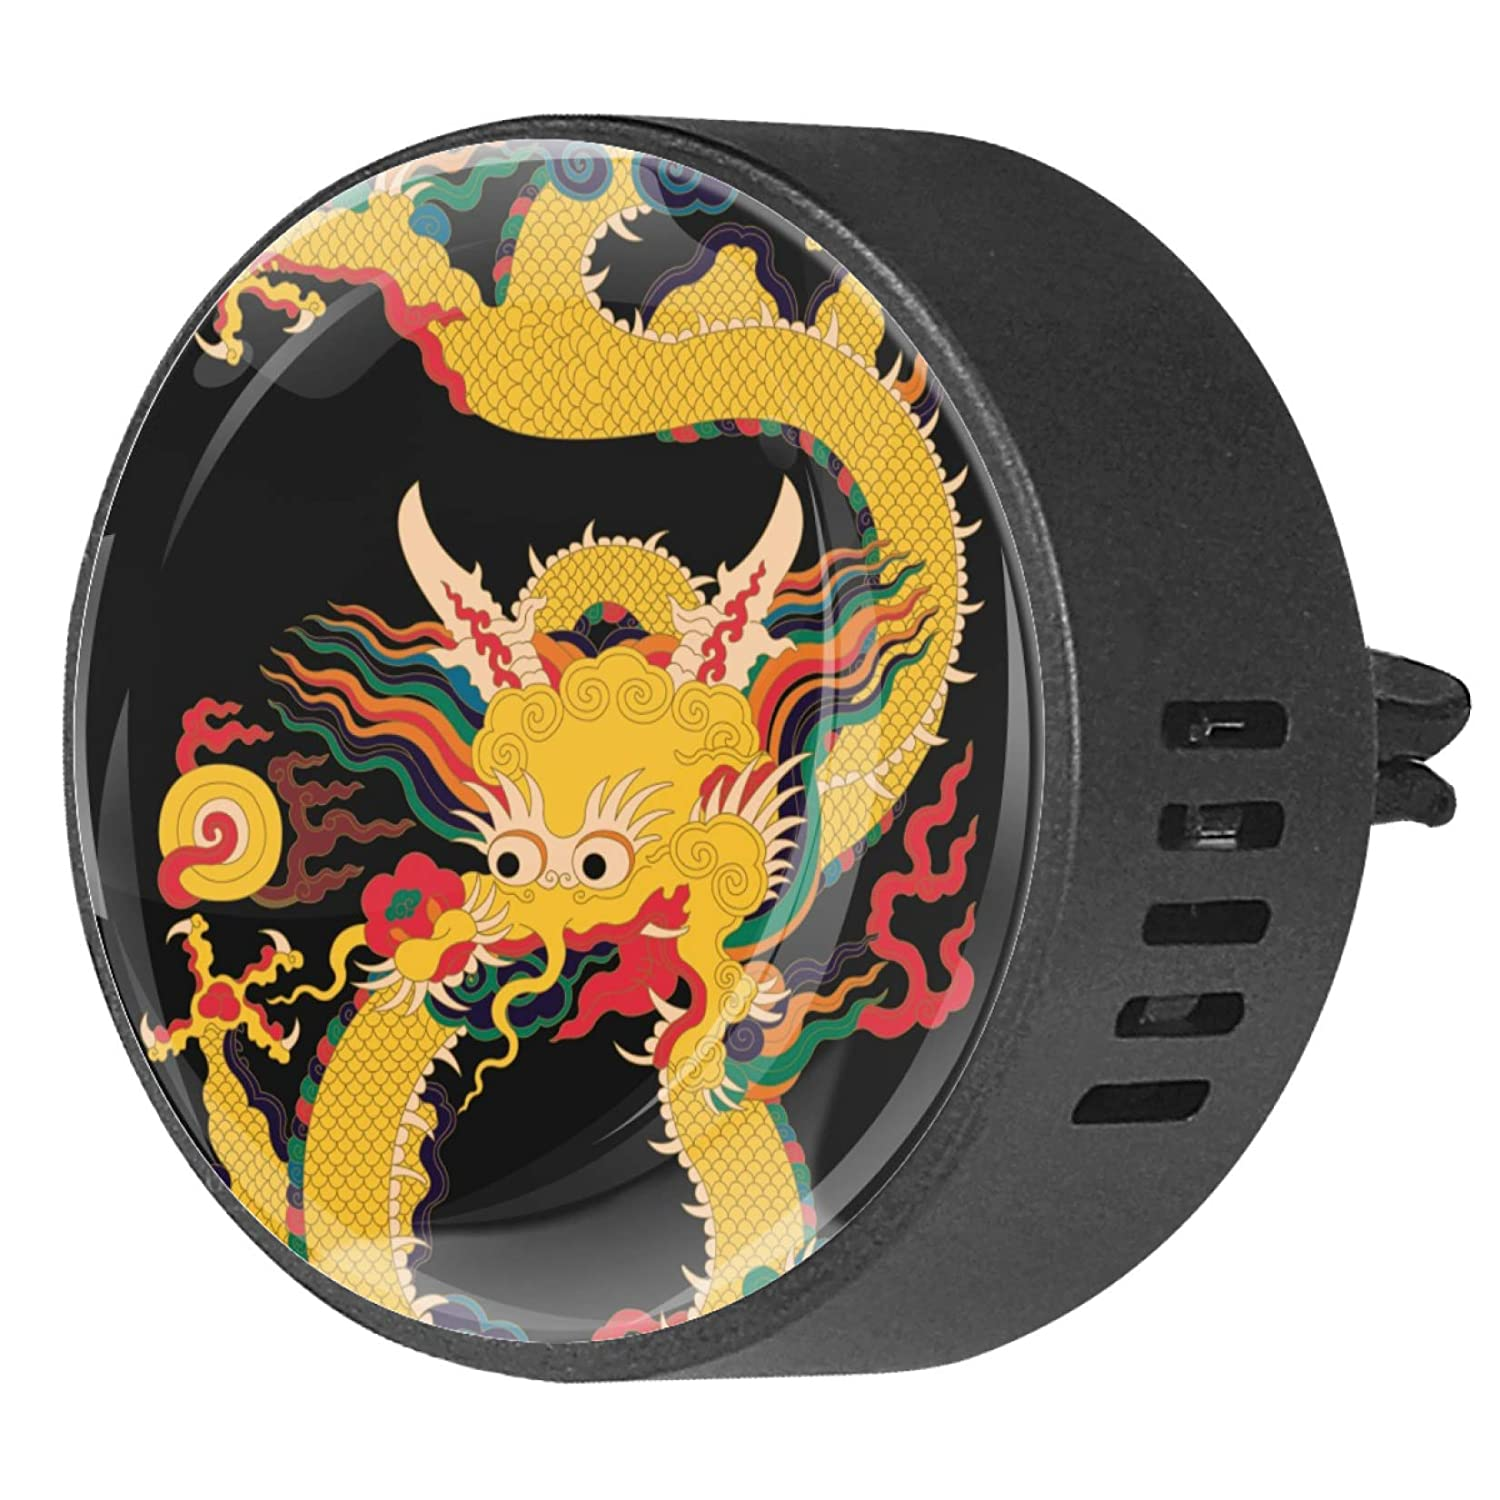 China Cloud Dragon Aromatherapy Air Freshener Vent Clip for Car Office Home Pack 2, Orchid